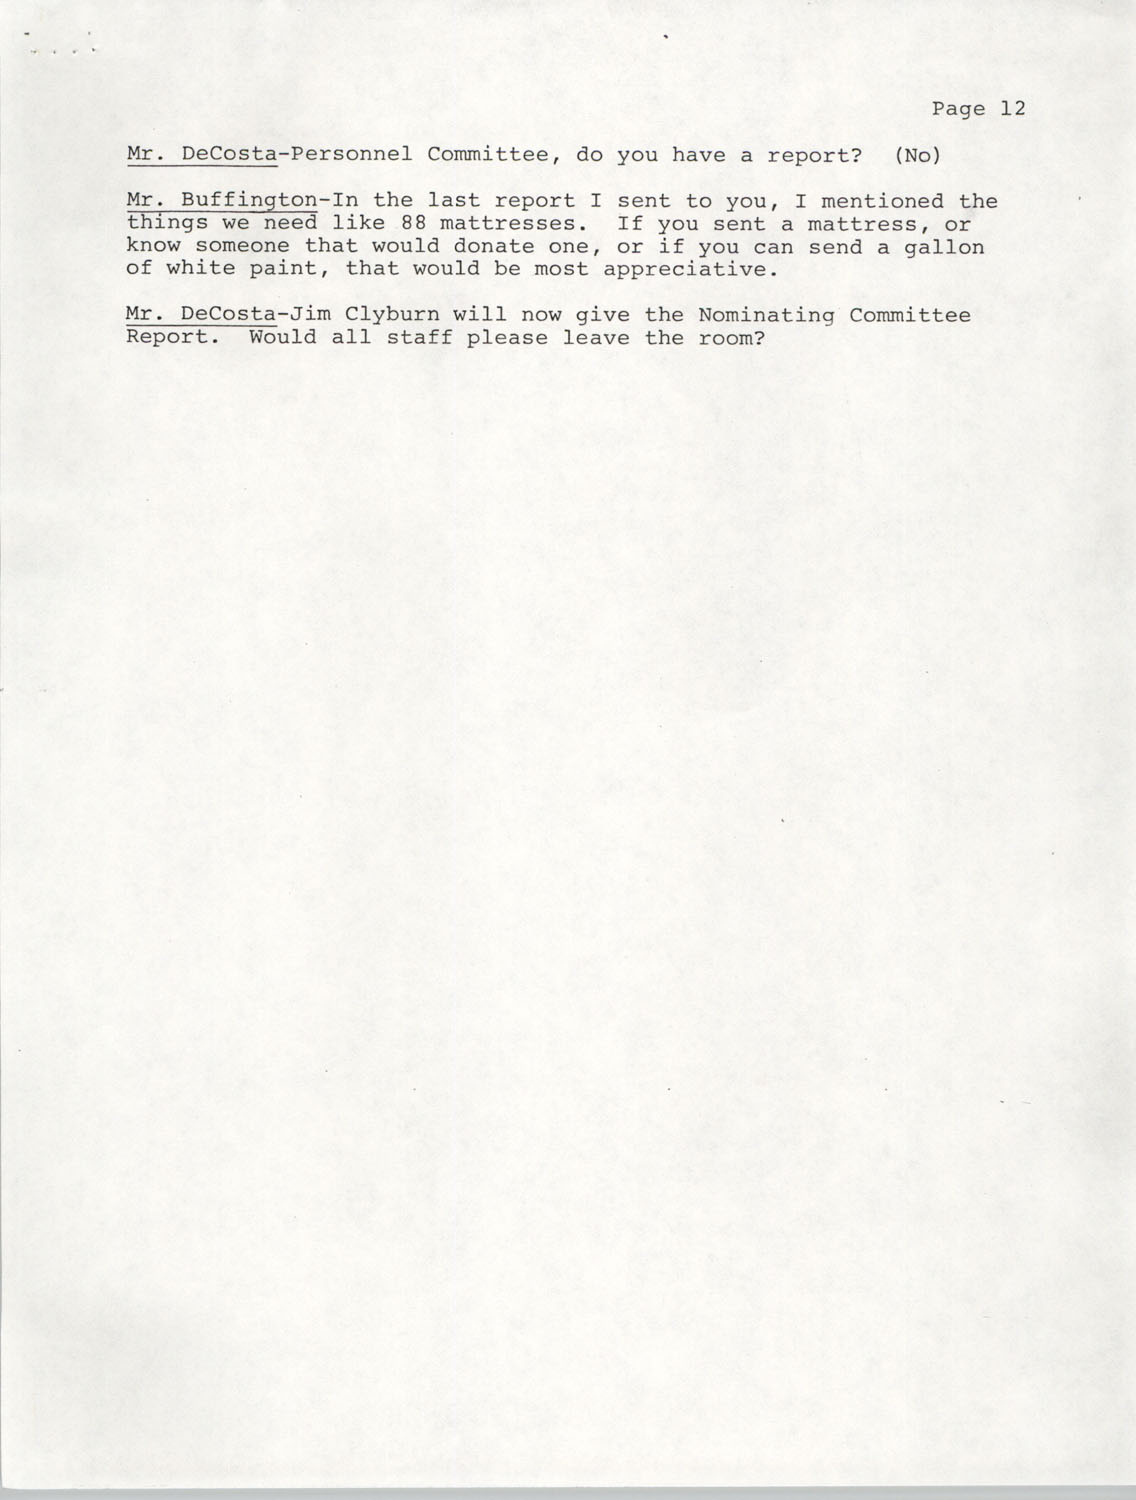 Minutes, Annual Board Meeting, Penn Community Services, October 22, 1977, Page 12